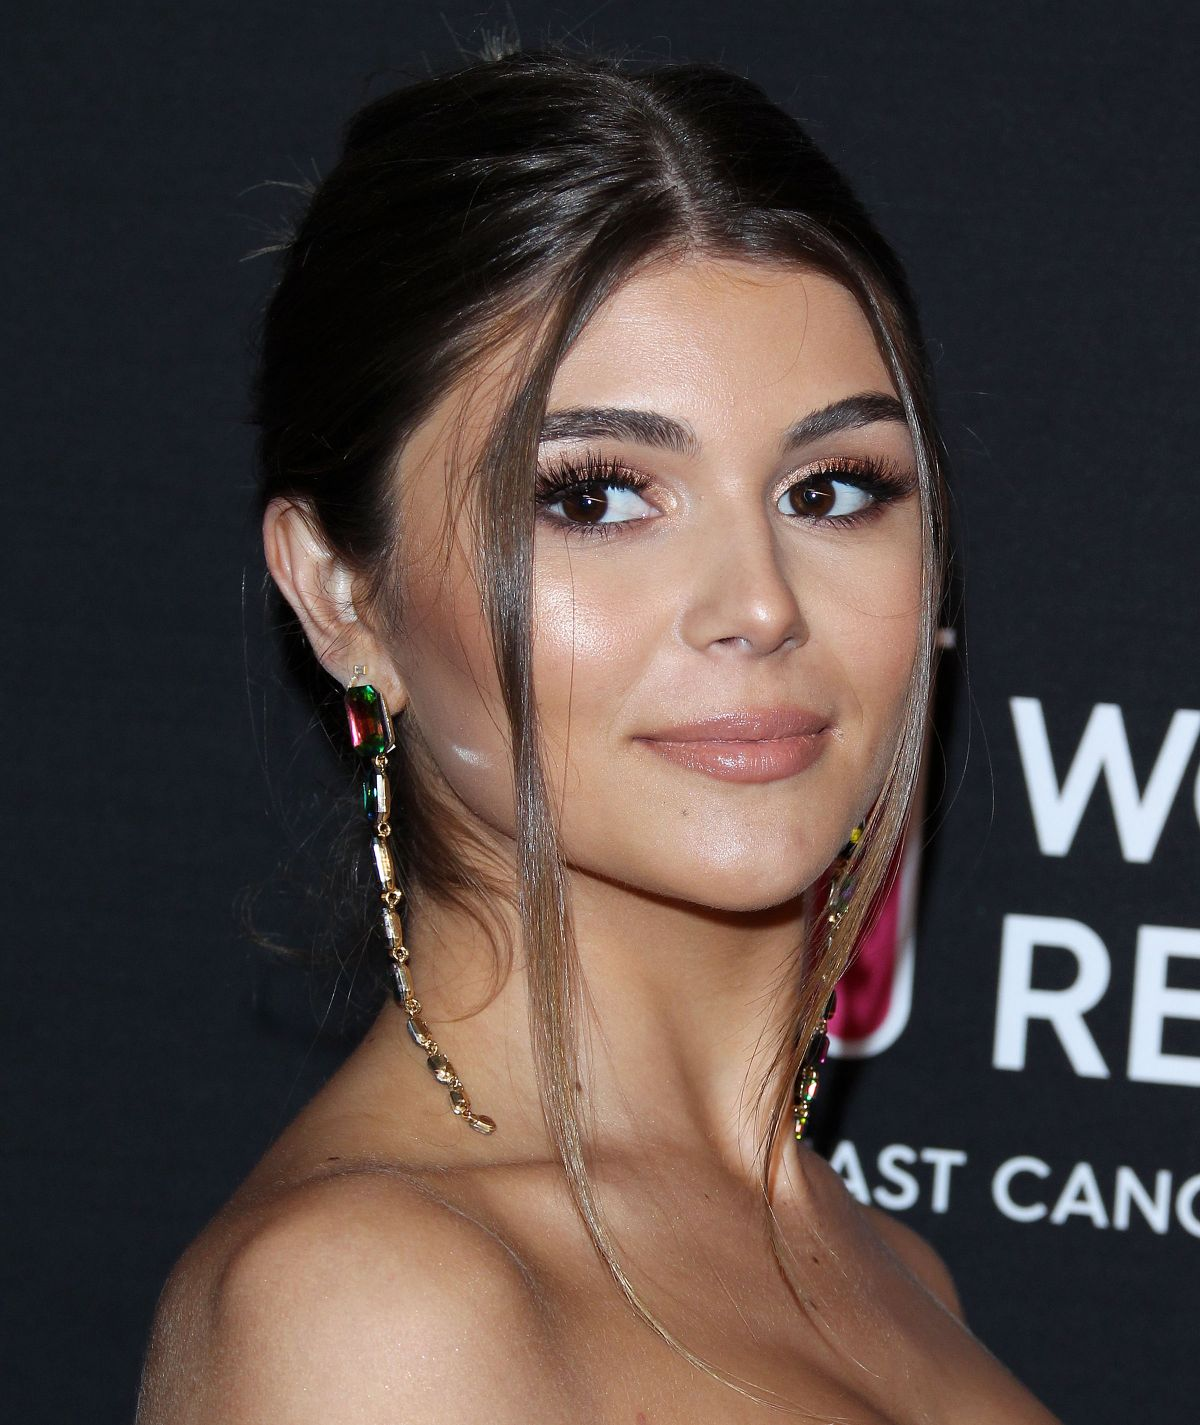 OLIVIA JADE at An Unforgettable Evening in Beverly Hills ... Olivia Jade